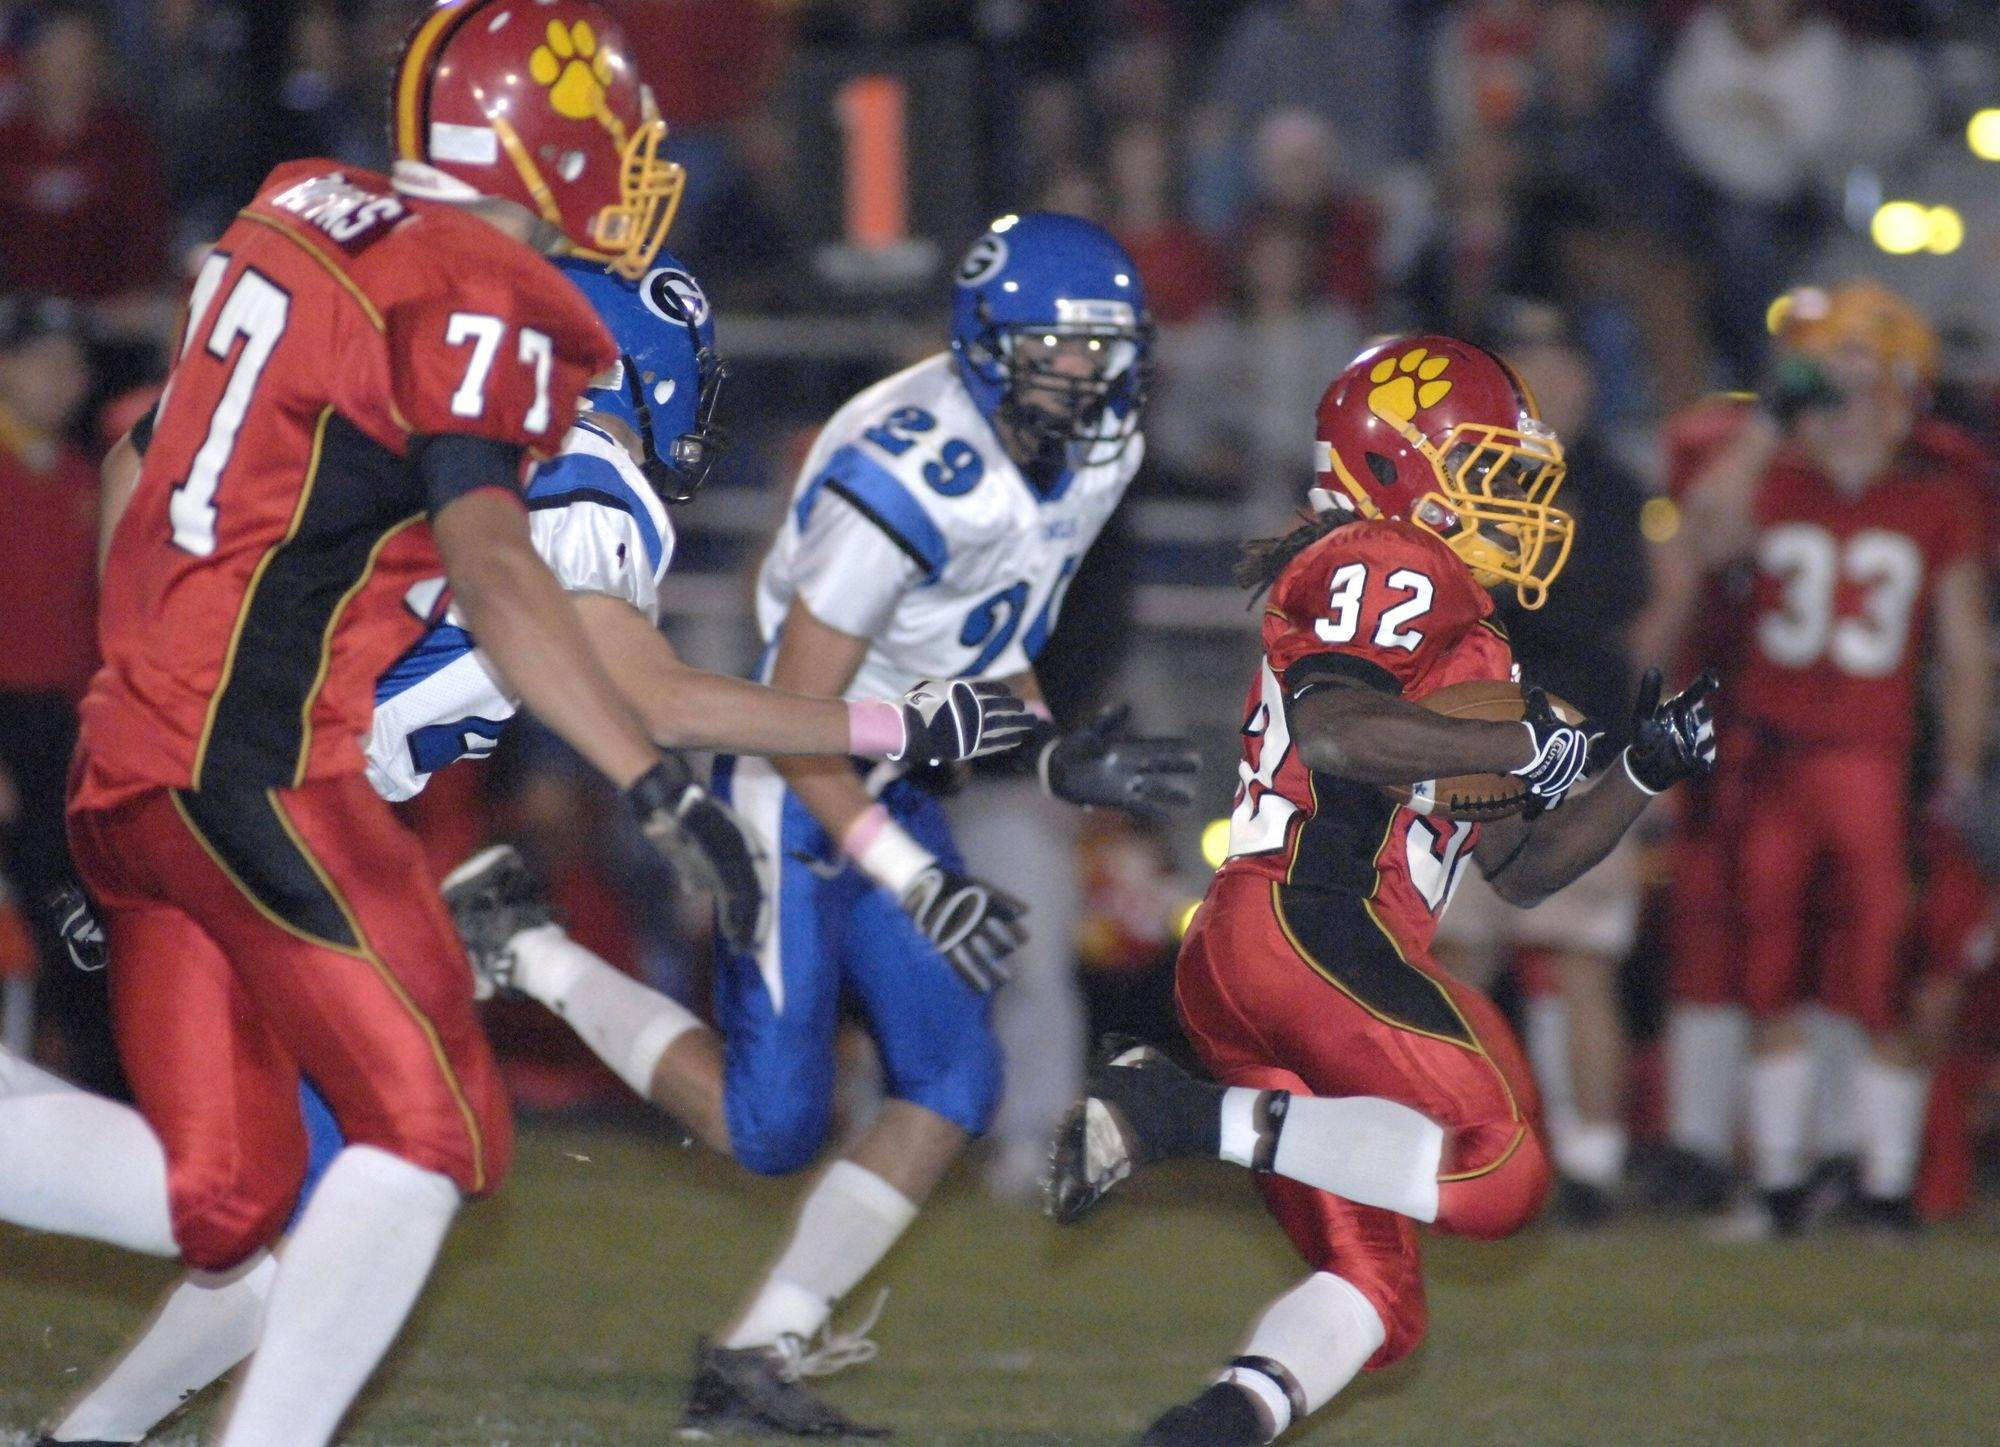 WEEK 6- Batavia's Edmund Kabba makes a rush for the goal line in the third quarter.